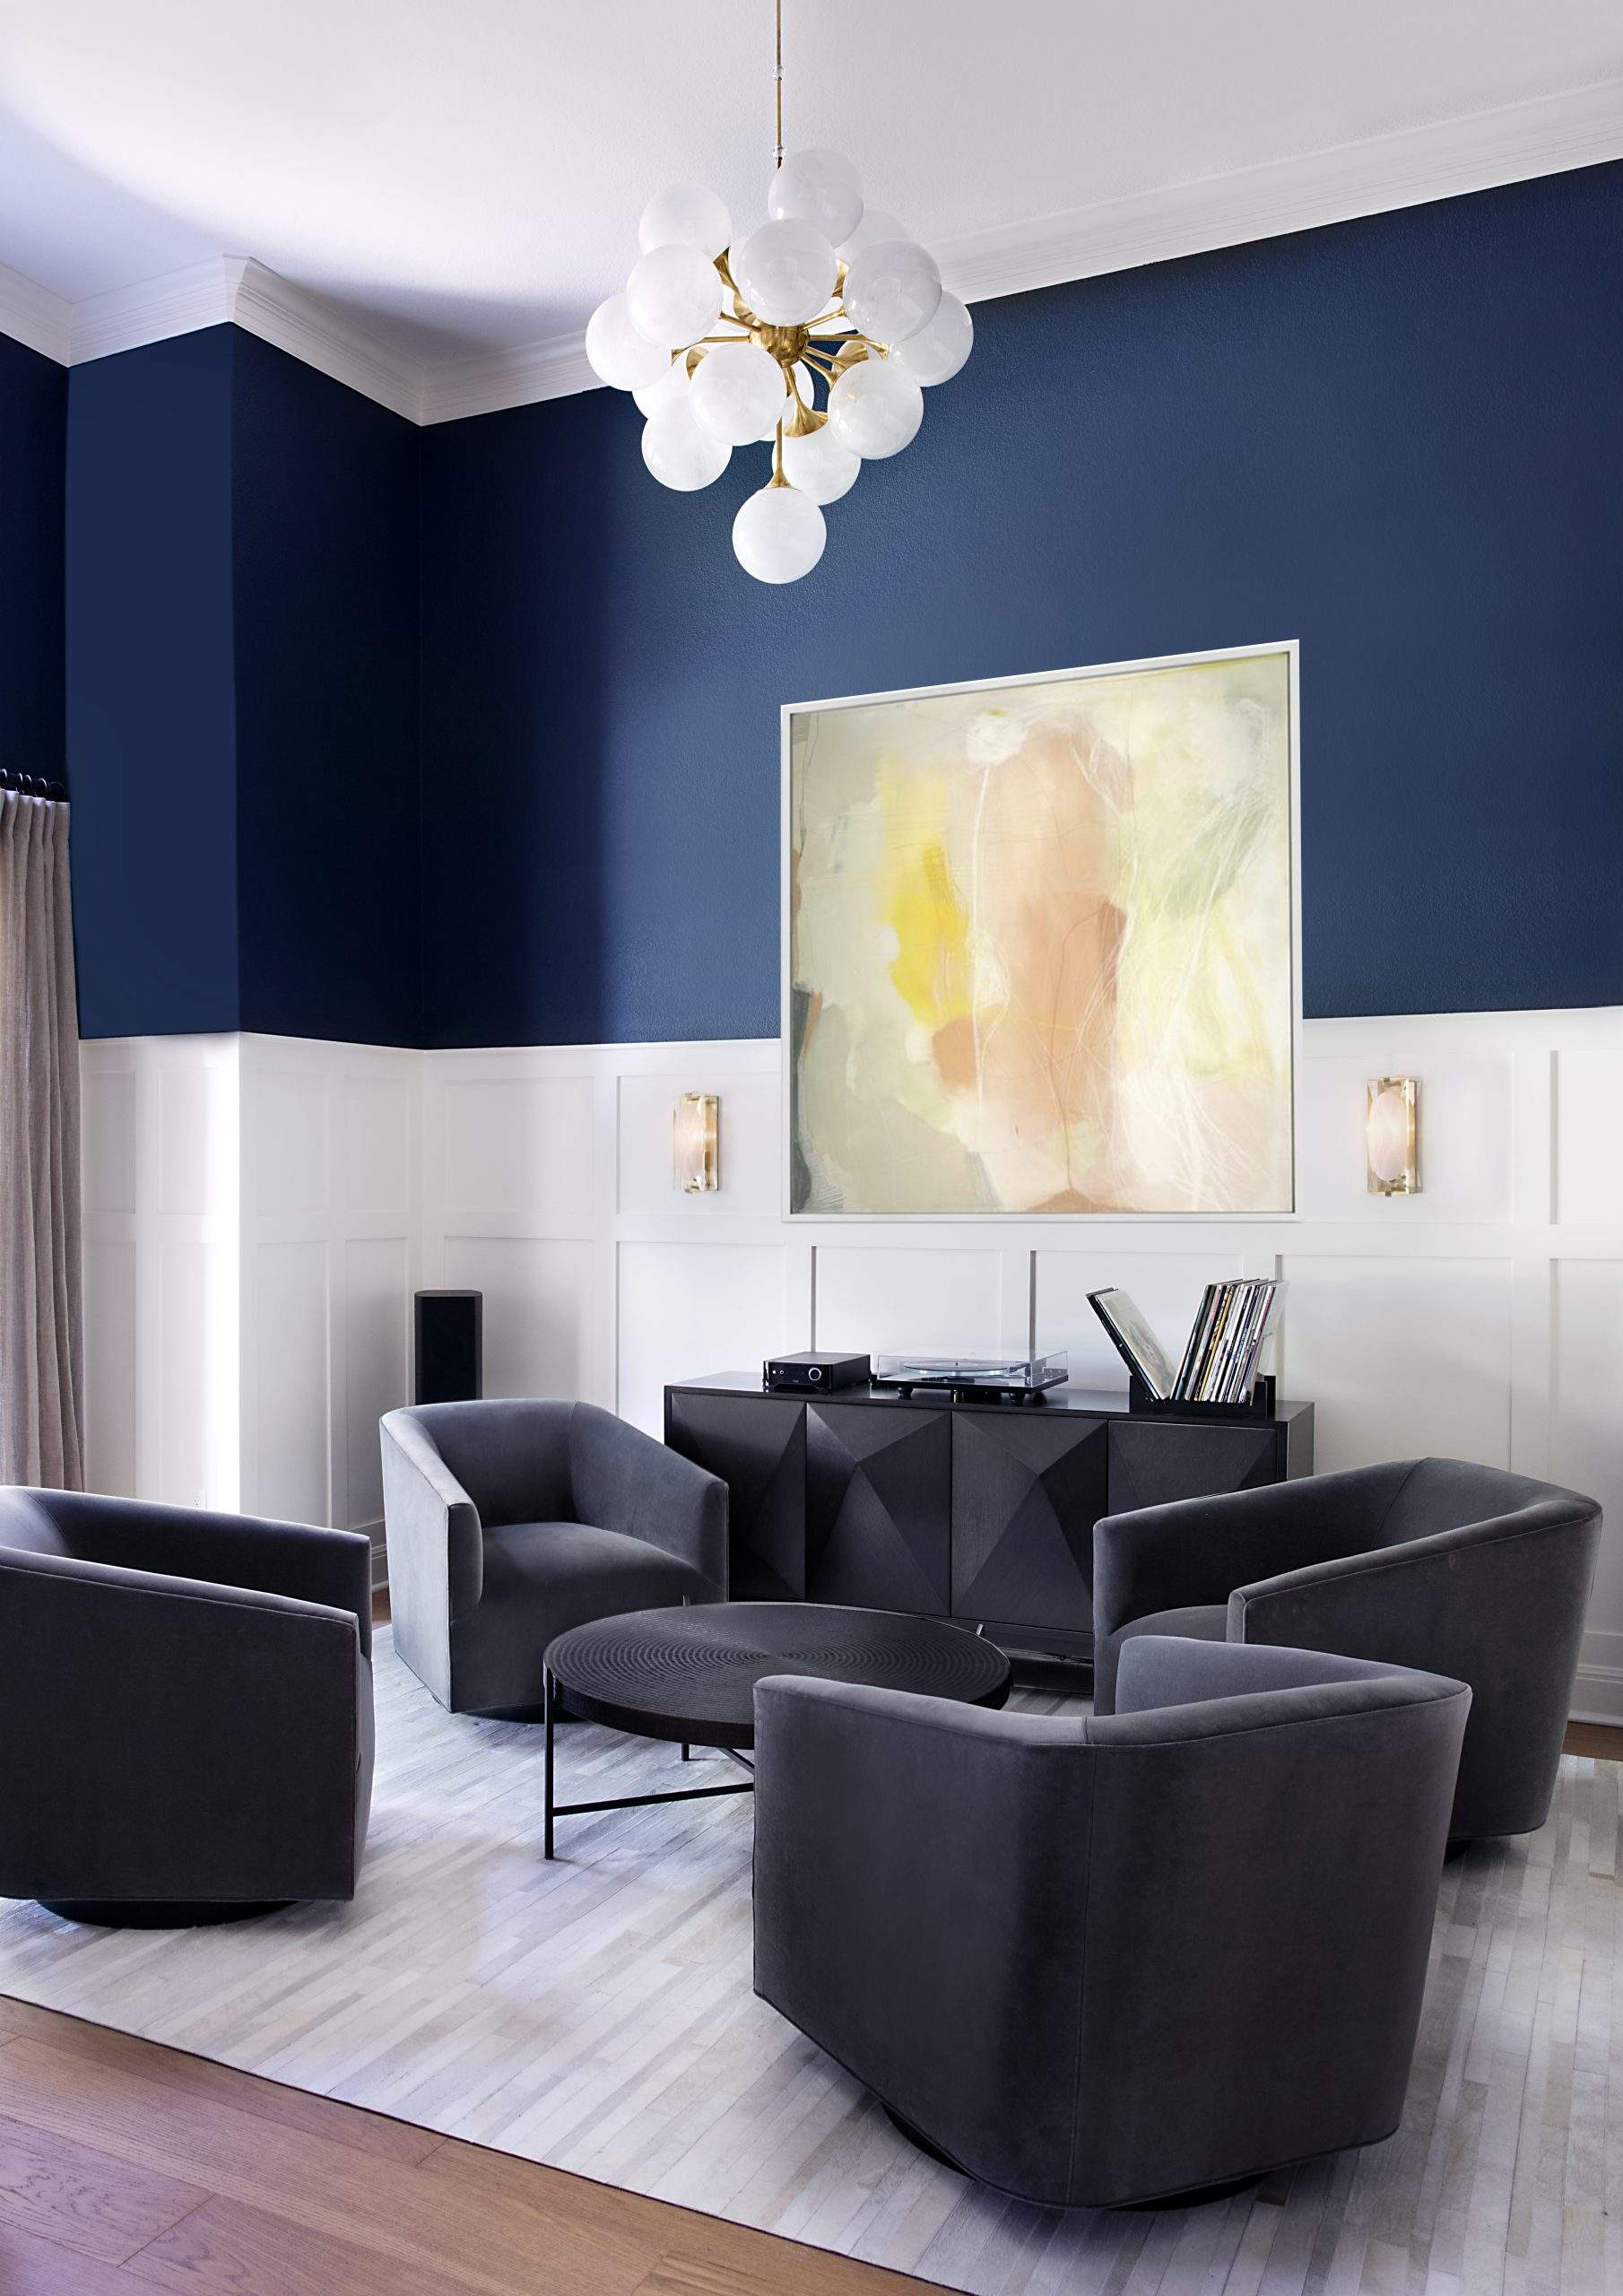 Alta Vista - Texas interior design | seating area with chandelier and art | austin, texas